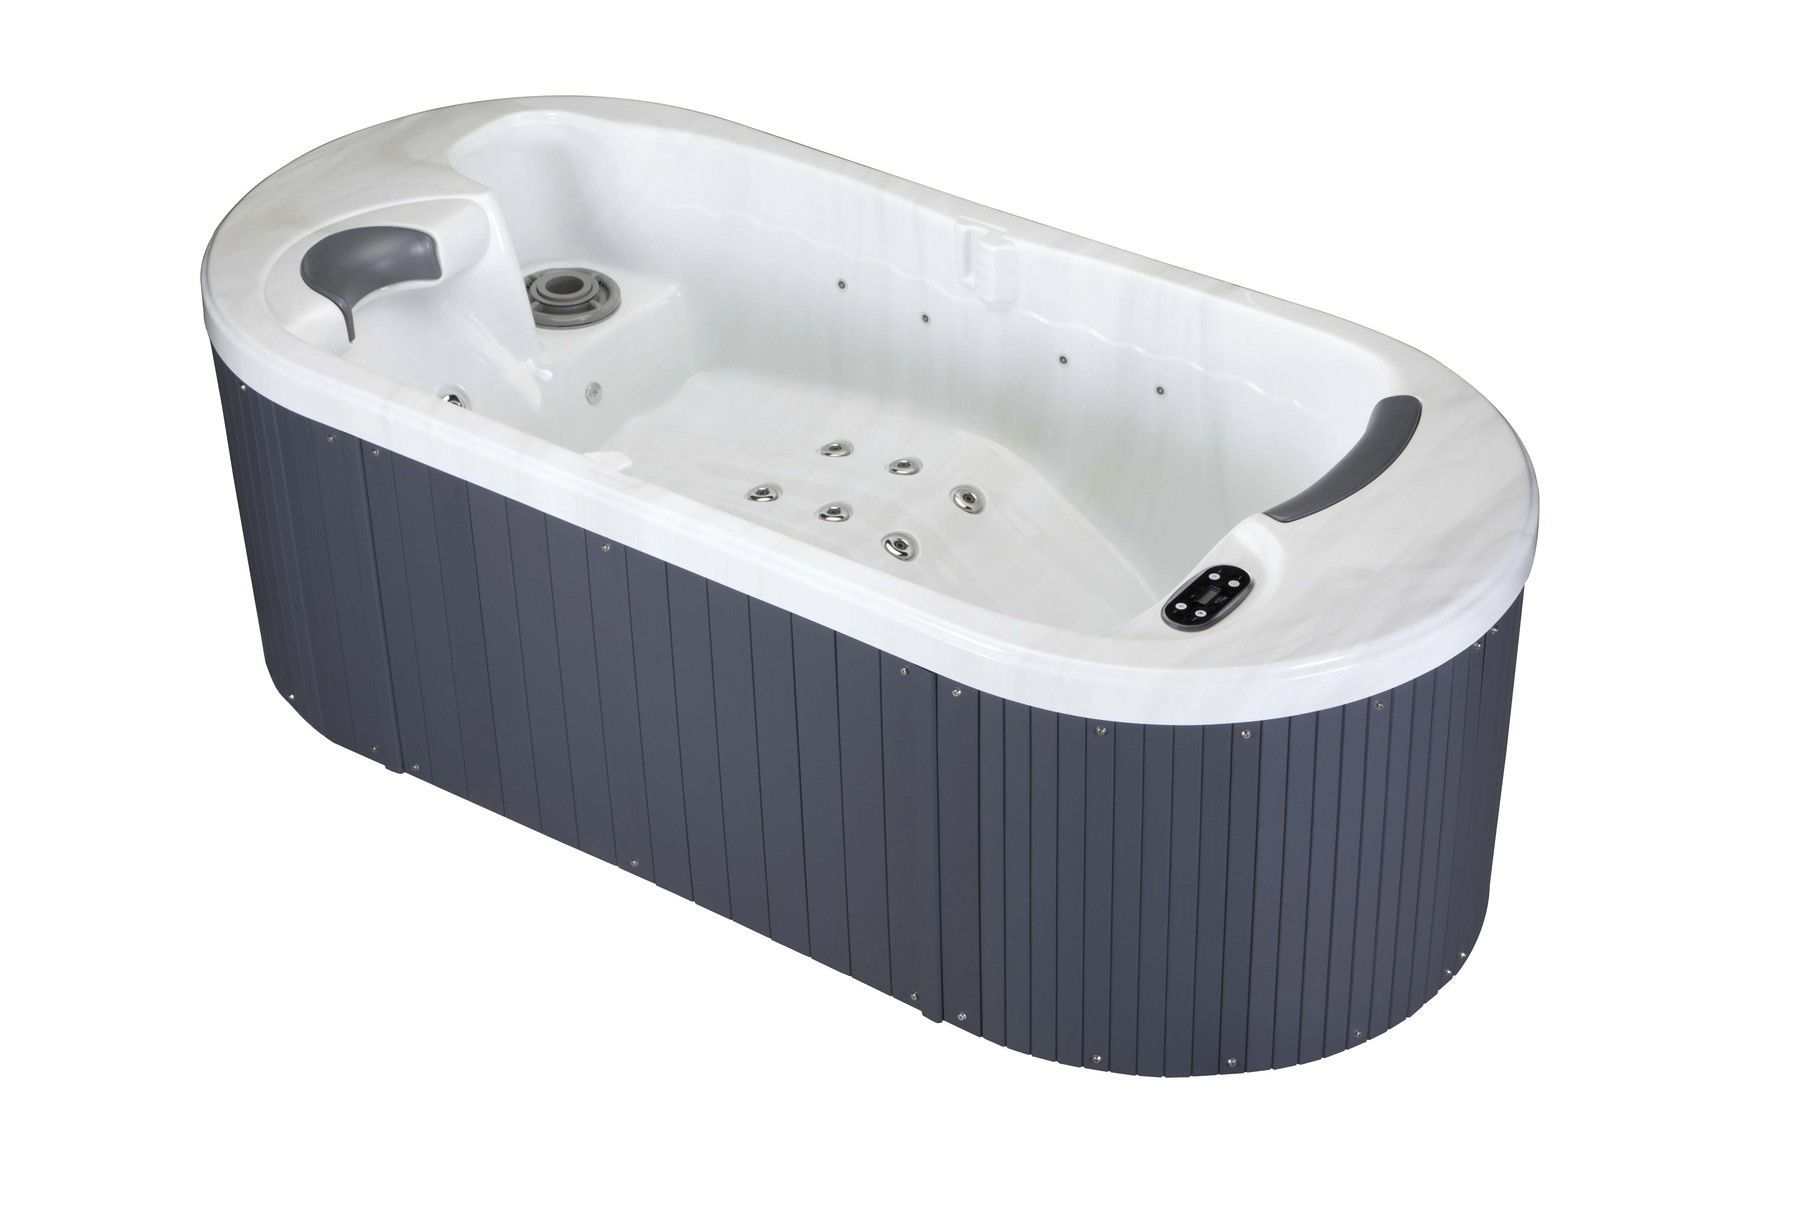 tub portable deluxe image person unbelievable aqua files hot trend water concept inflatable tubs blue for spa and by toys uncategorized